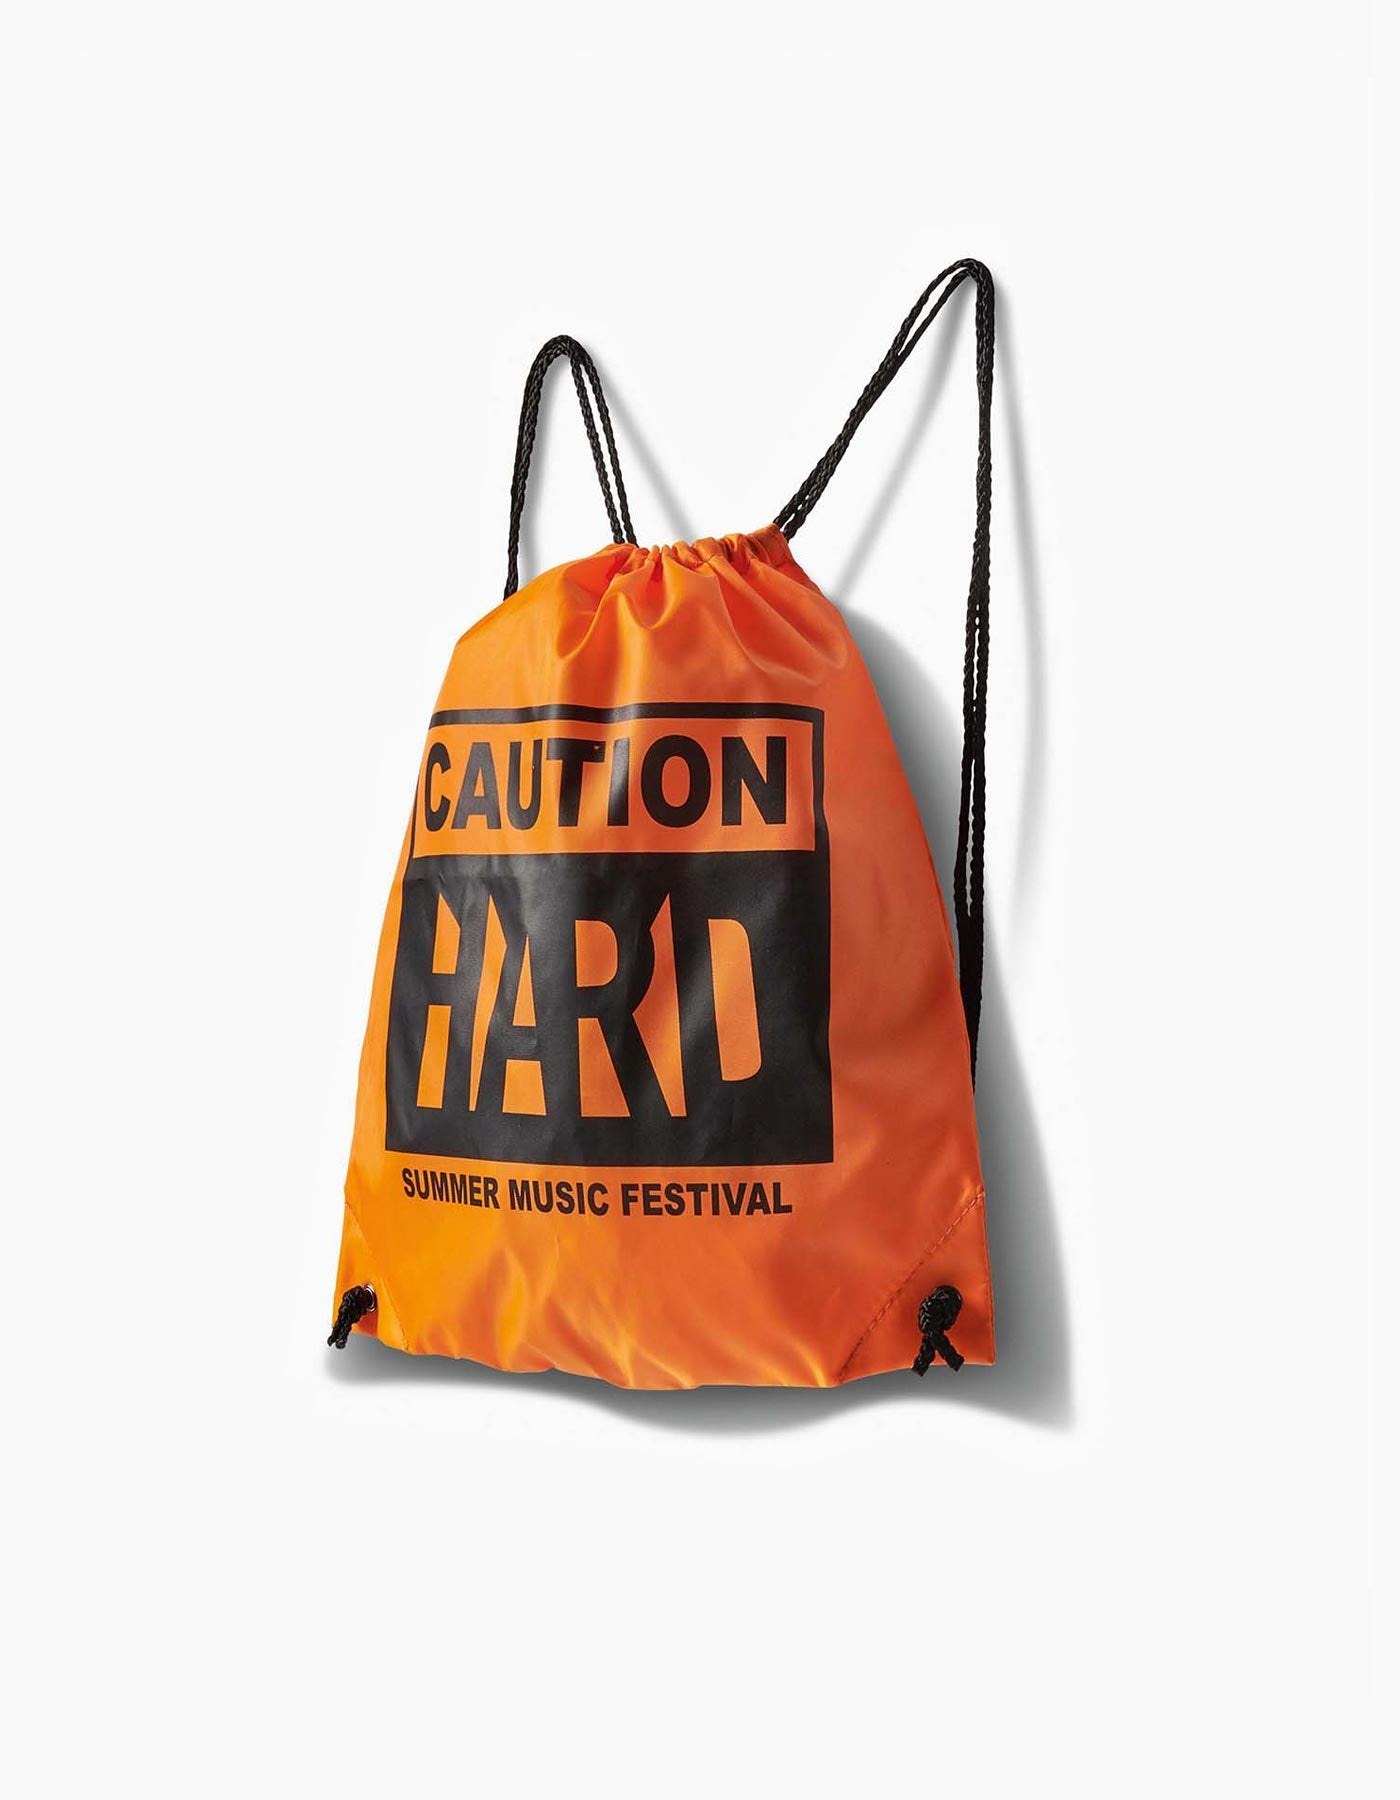 HARD - Caution Cinch Bag